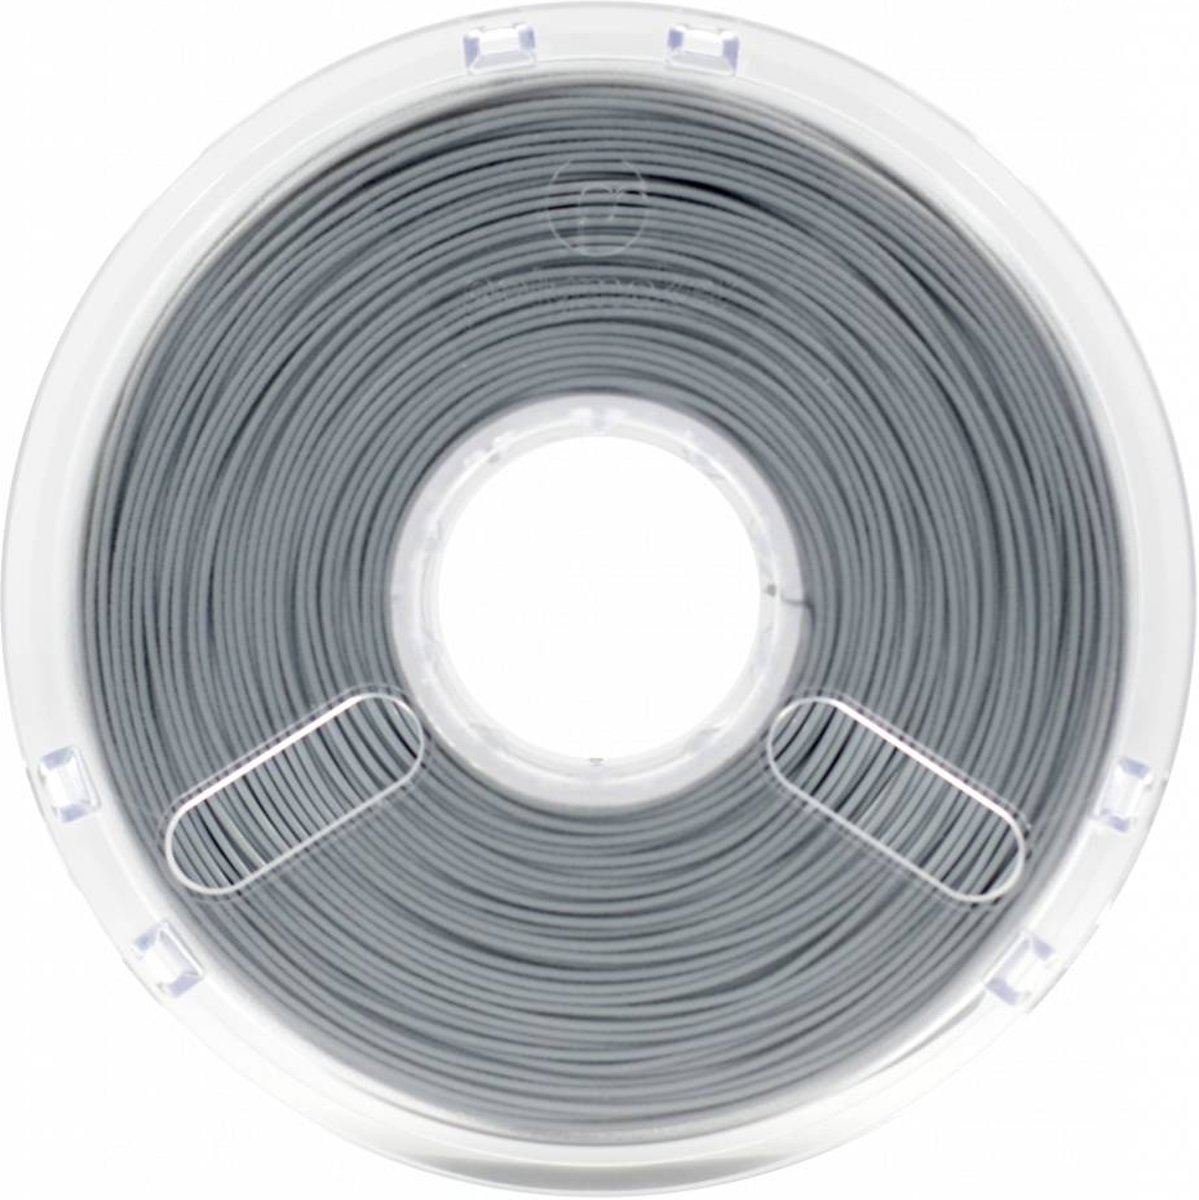 Polymaker Filament voor 3D-printer PolyMax PLA Jam Free Technology 1.75 mm 0.75 kg - True Grey